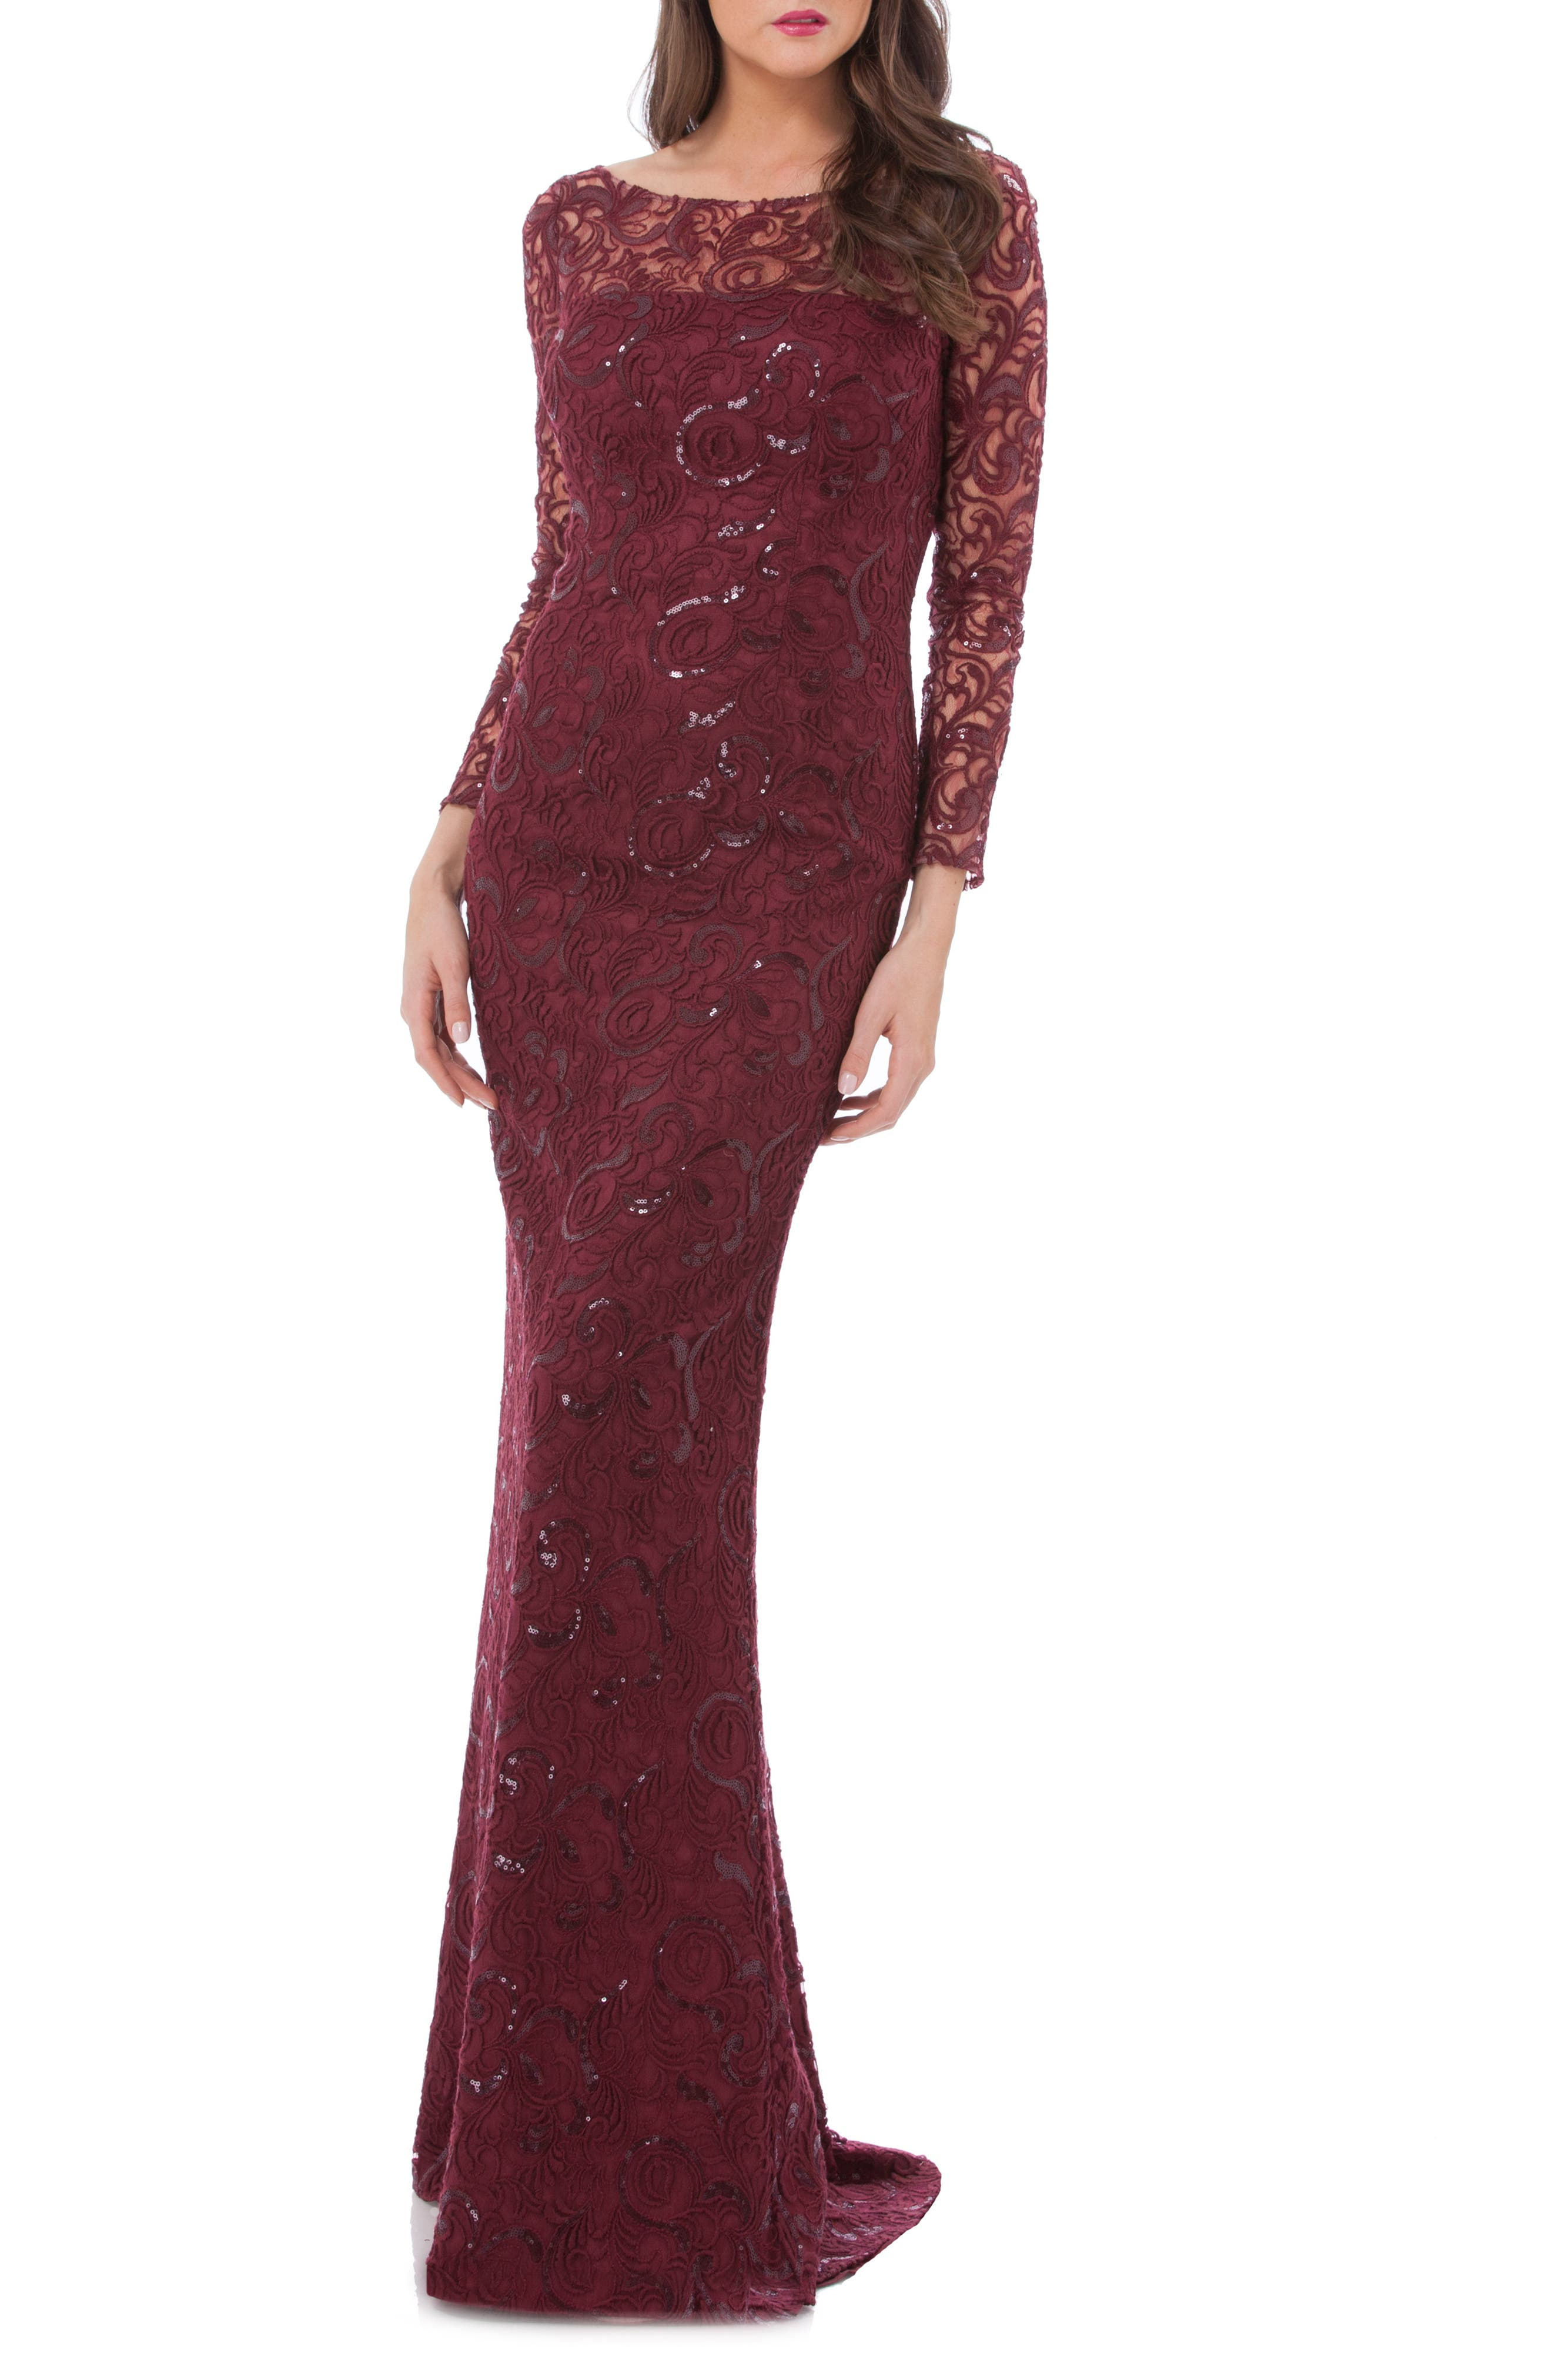 Main Image - Carmen Marc Valvo Infusion Sequin Lace Mermaid Gown